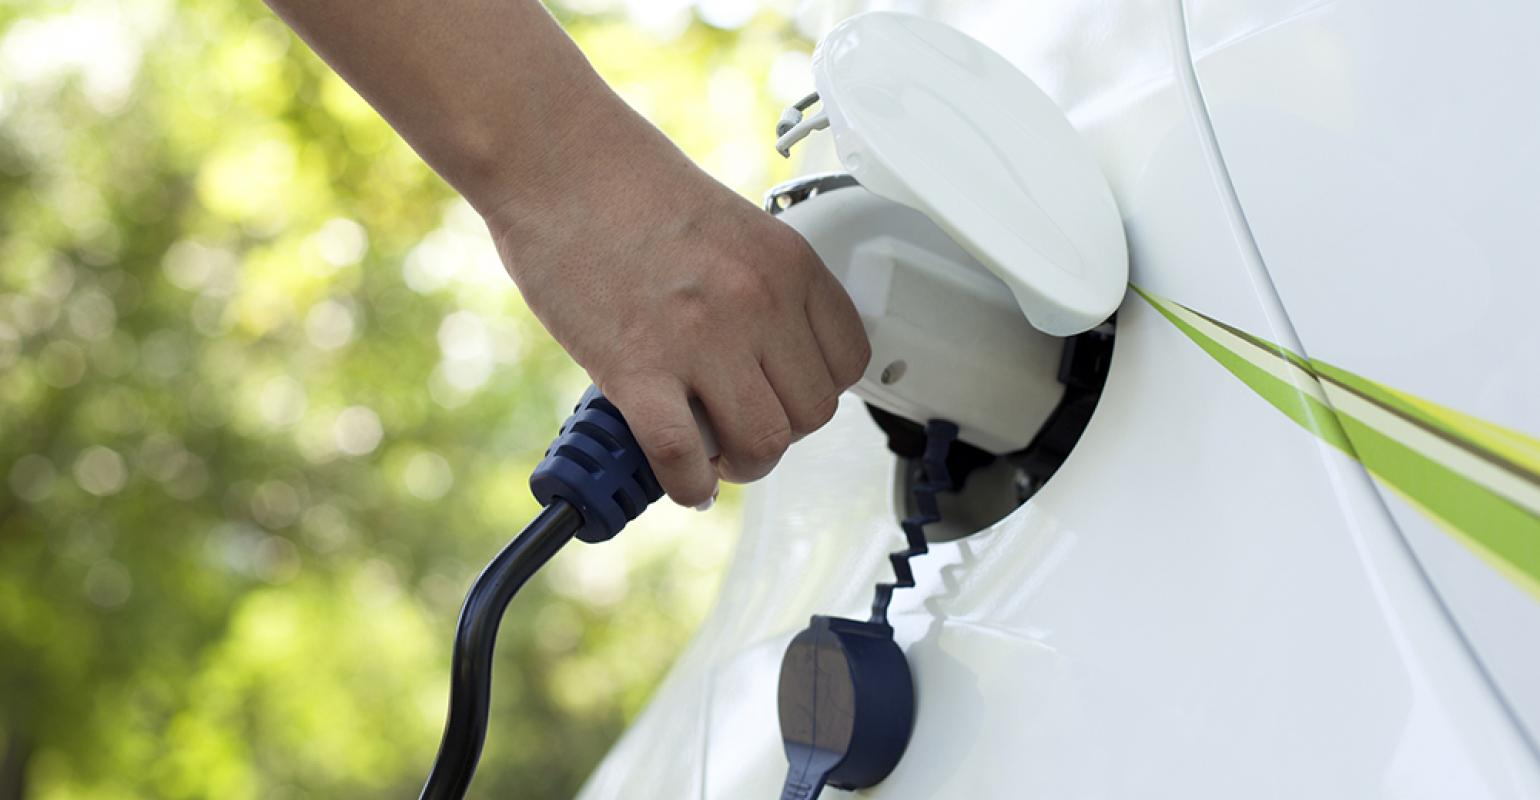 Whole Foods adds Blink electric vehicle charging stations | Supermarket News